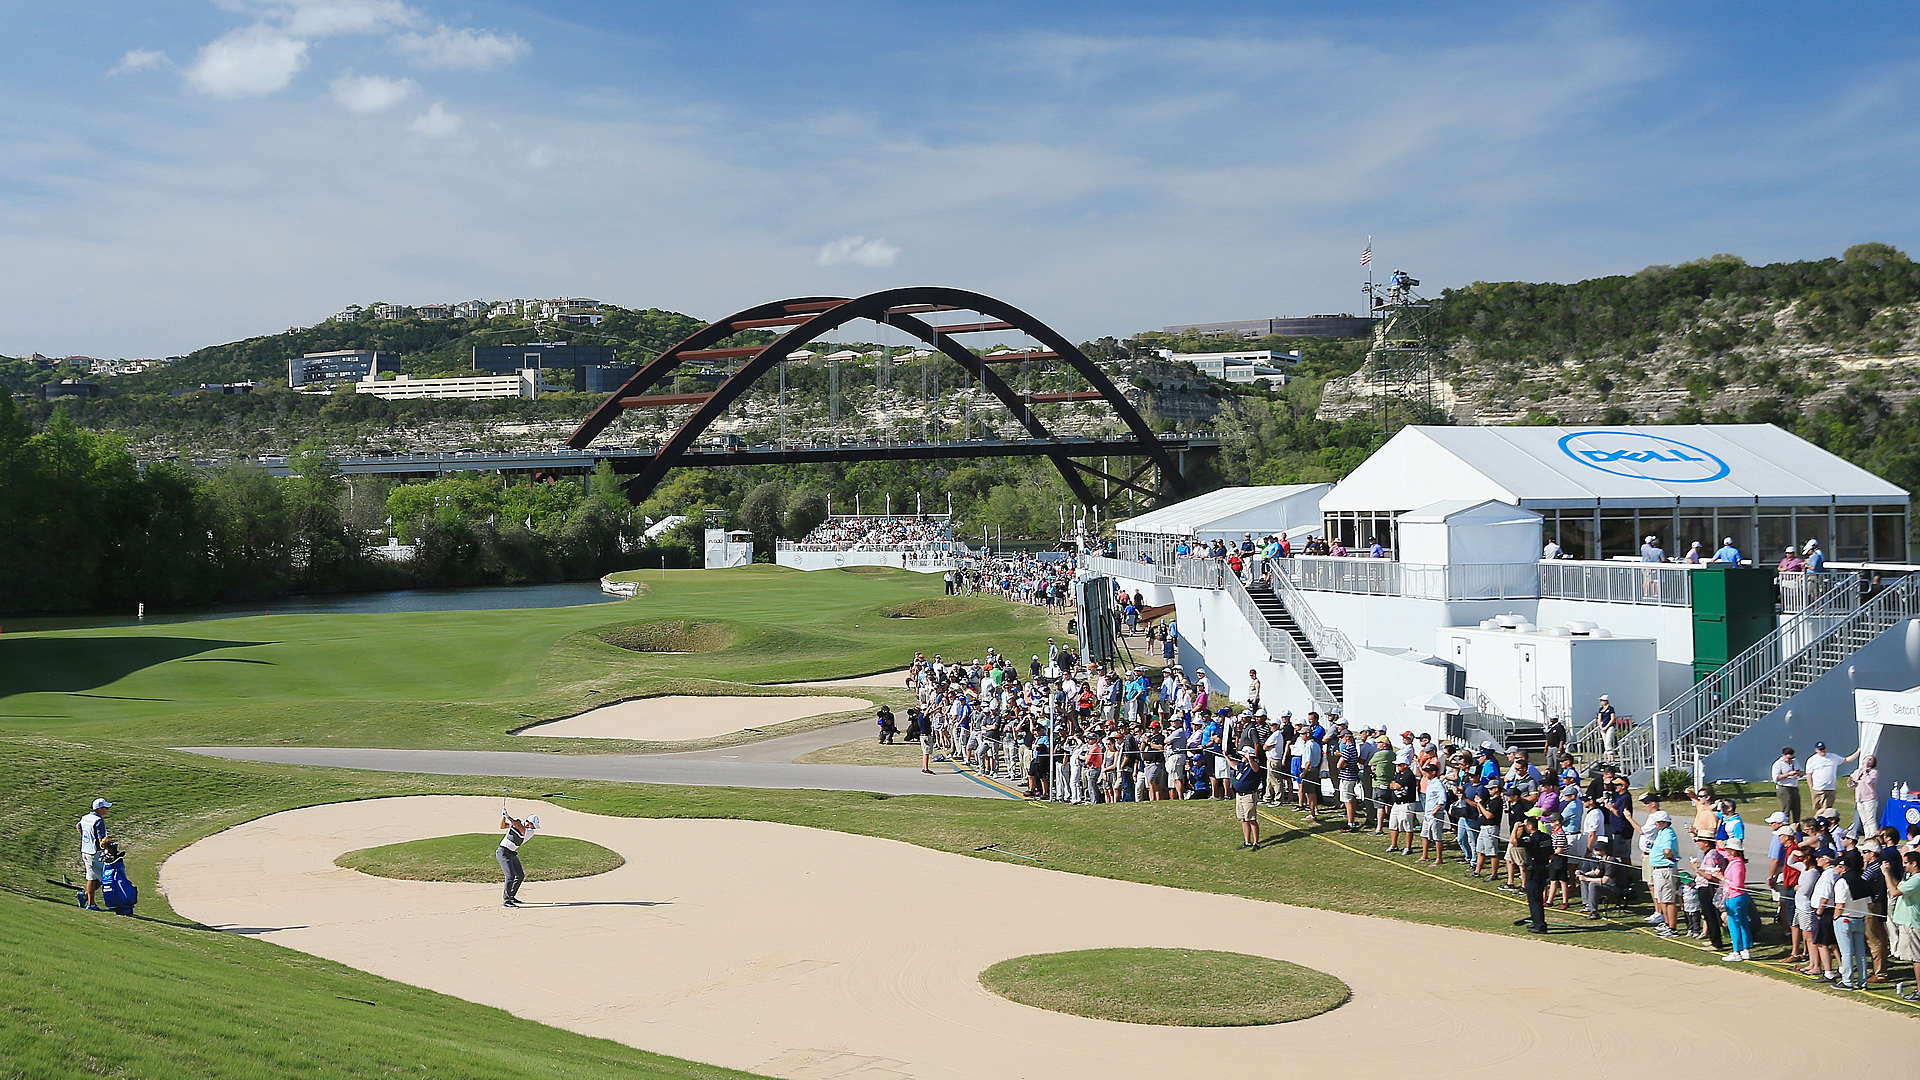 mcilroy_1920_matchplay16_overview.jpg